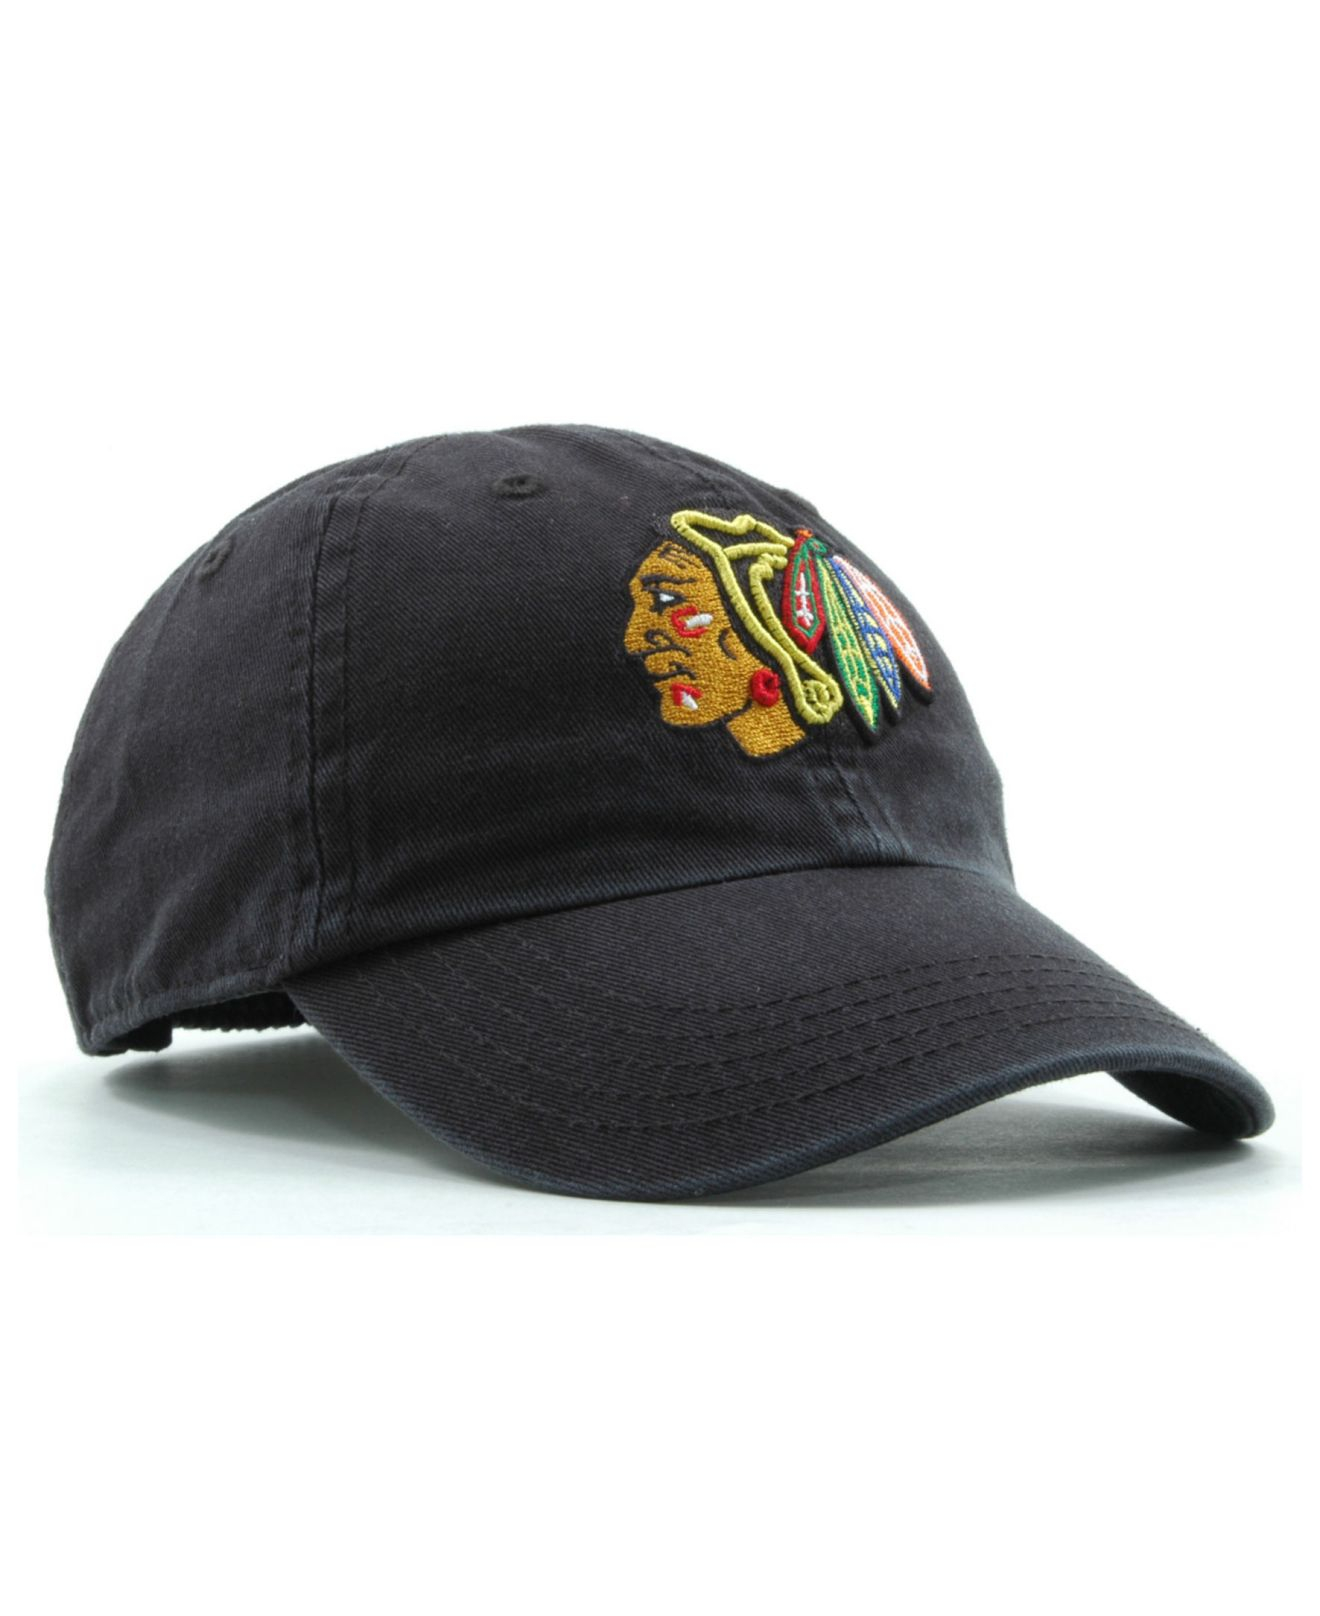 Lyst - 47 Brand Kids  Chicago Blackhawks Clean Up Cap in Black for Men 7df0caf3f355